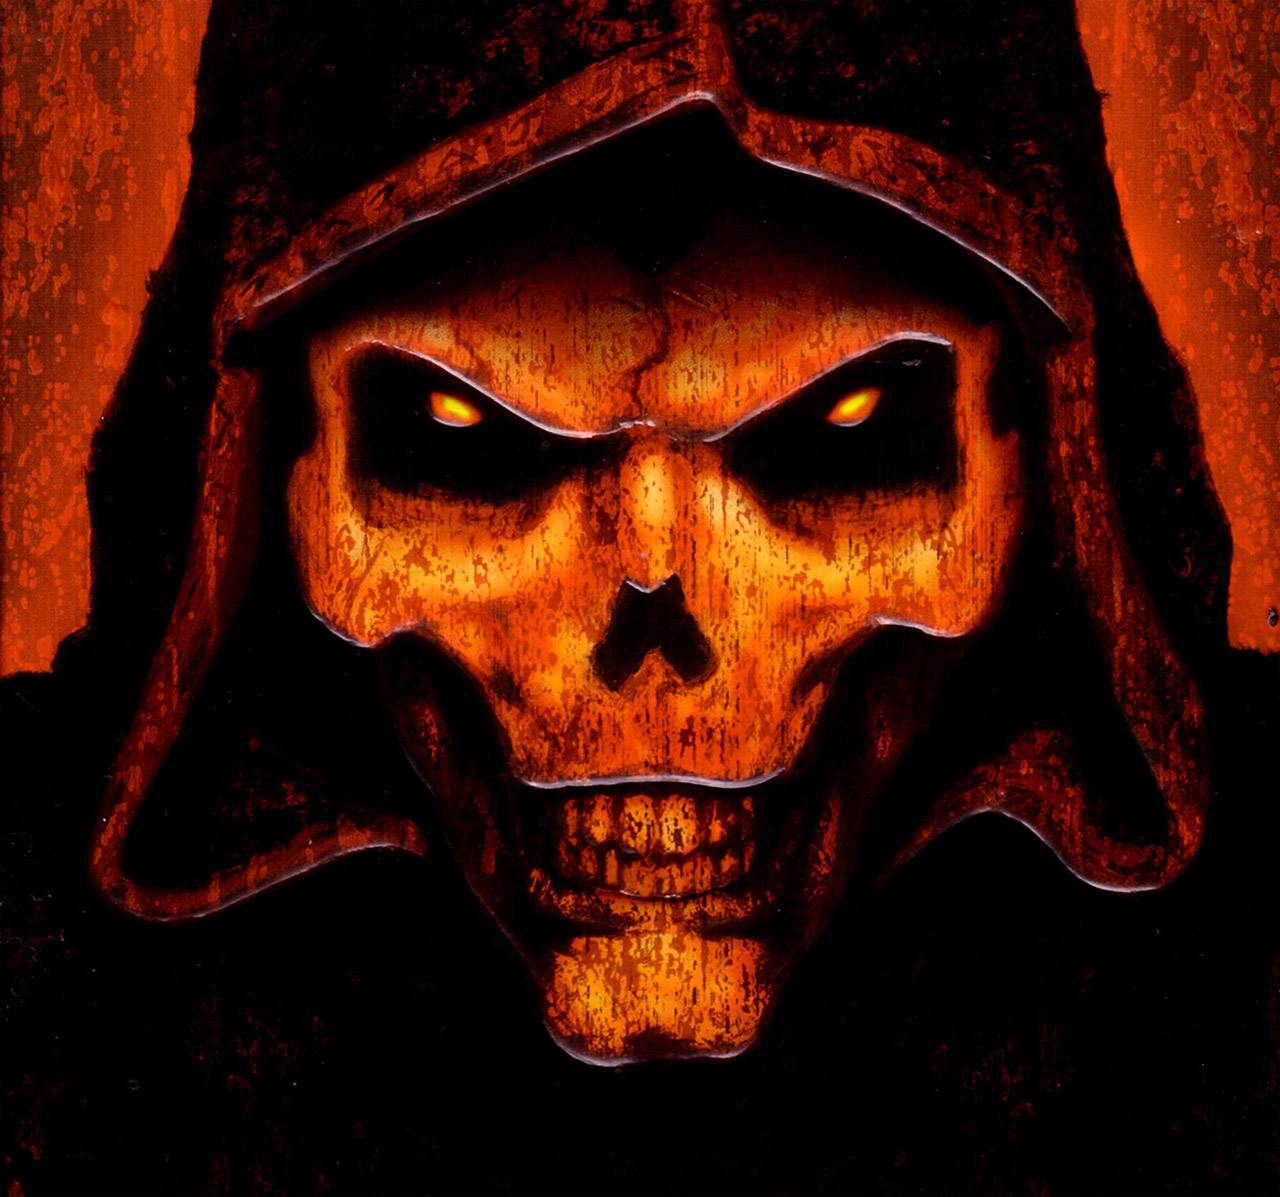 Blizzard just released a new patch for Diablo 2, five years after the last one